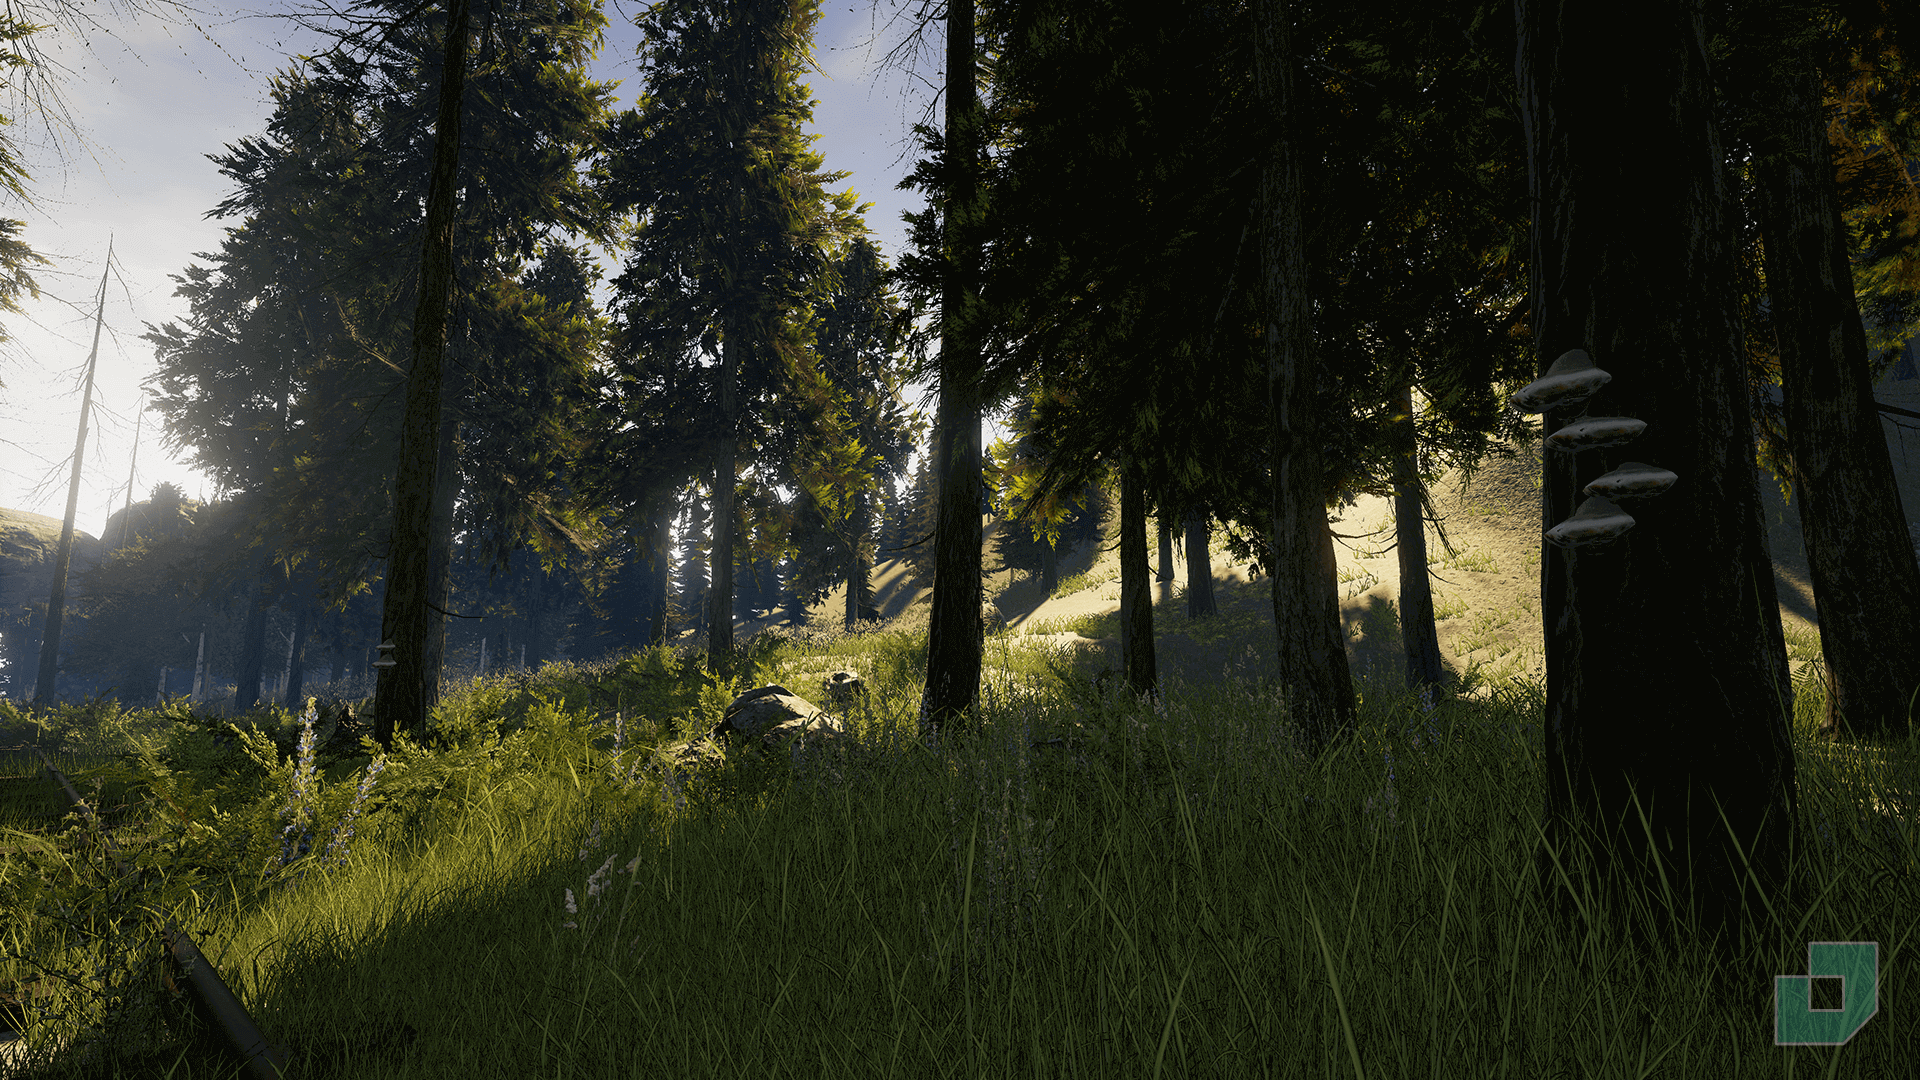 Low Poly Foliage Forest Pack by Dokyo in Environments - UE4